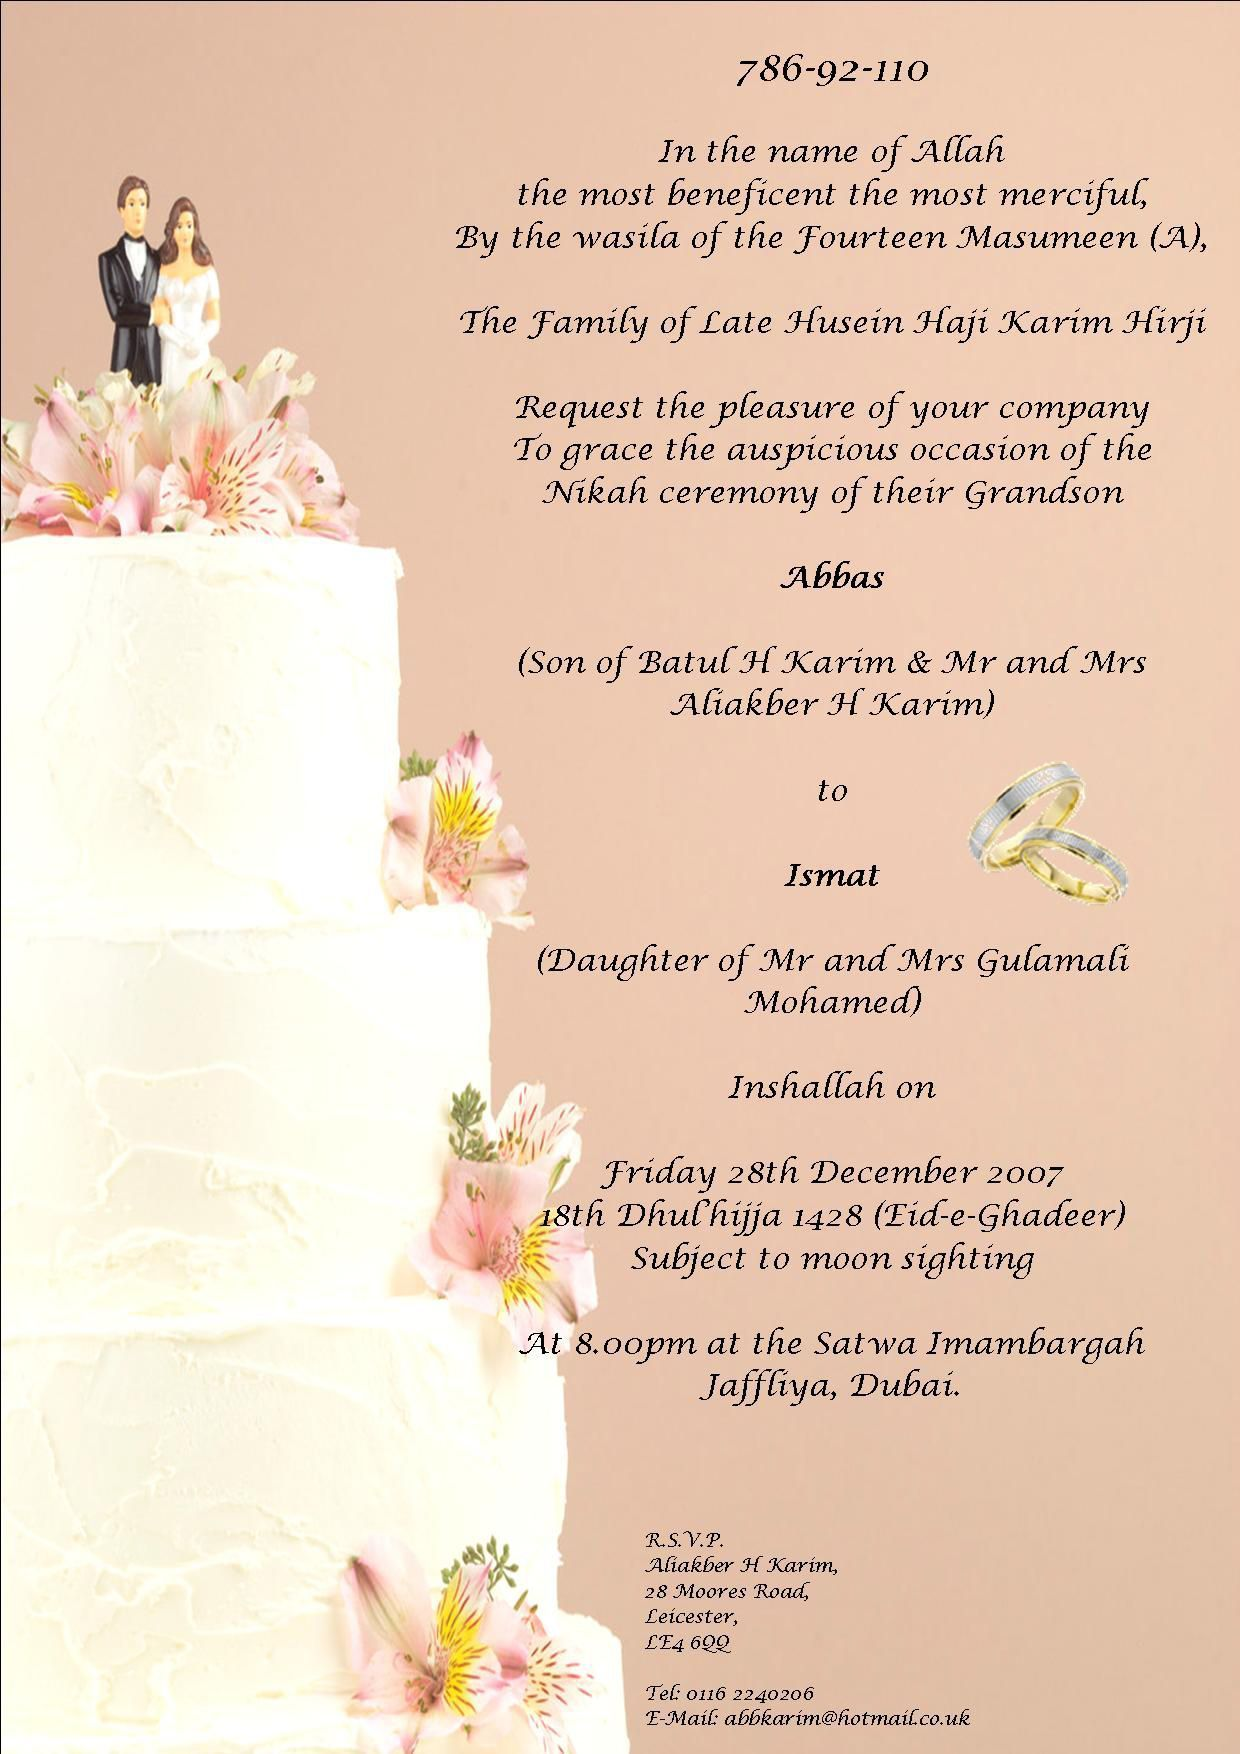 Wedding Invitation Wedding Card Invitation Free Invitation For You Free Invitation For You